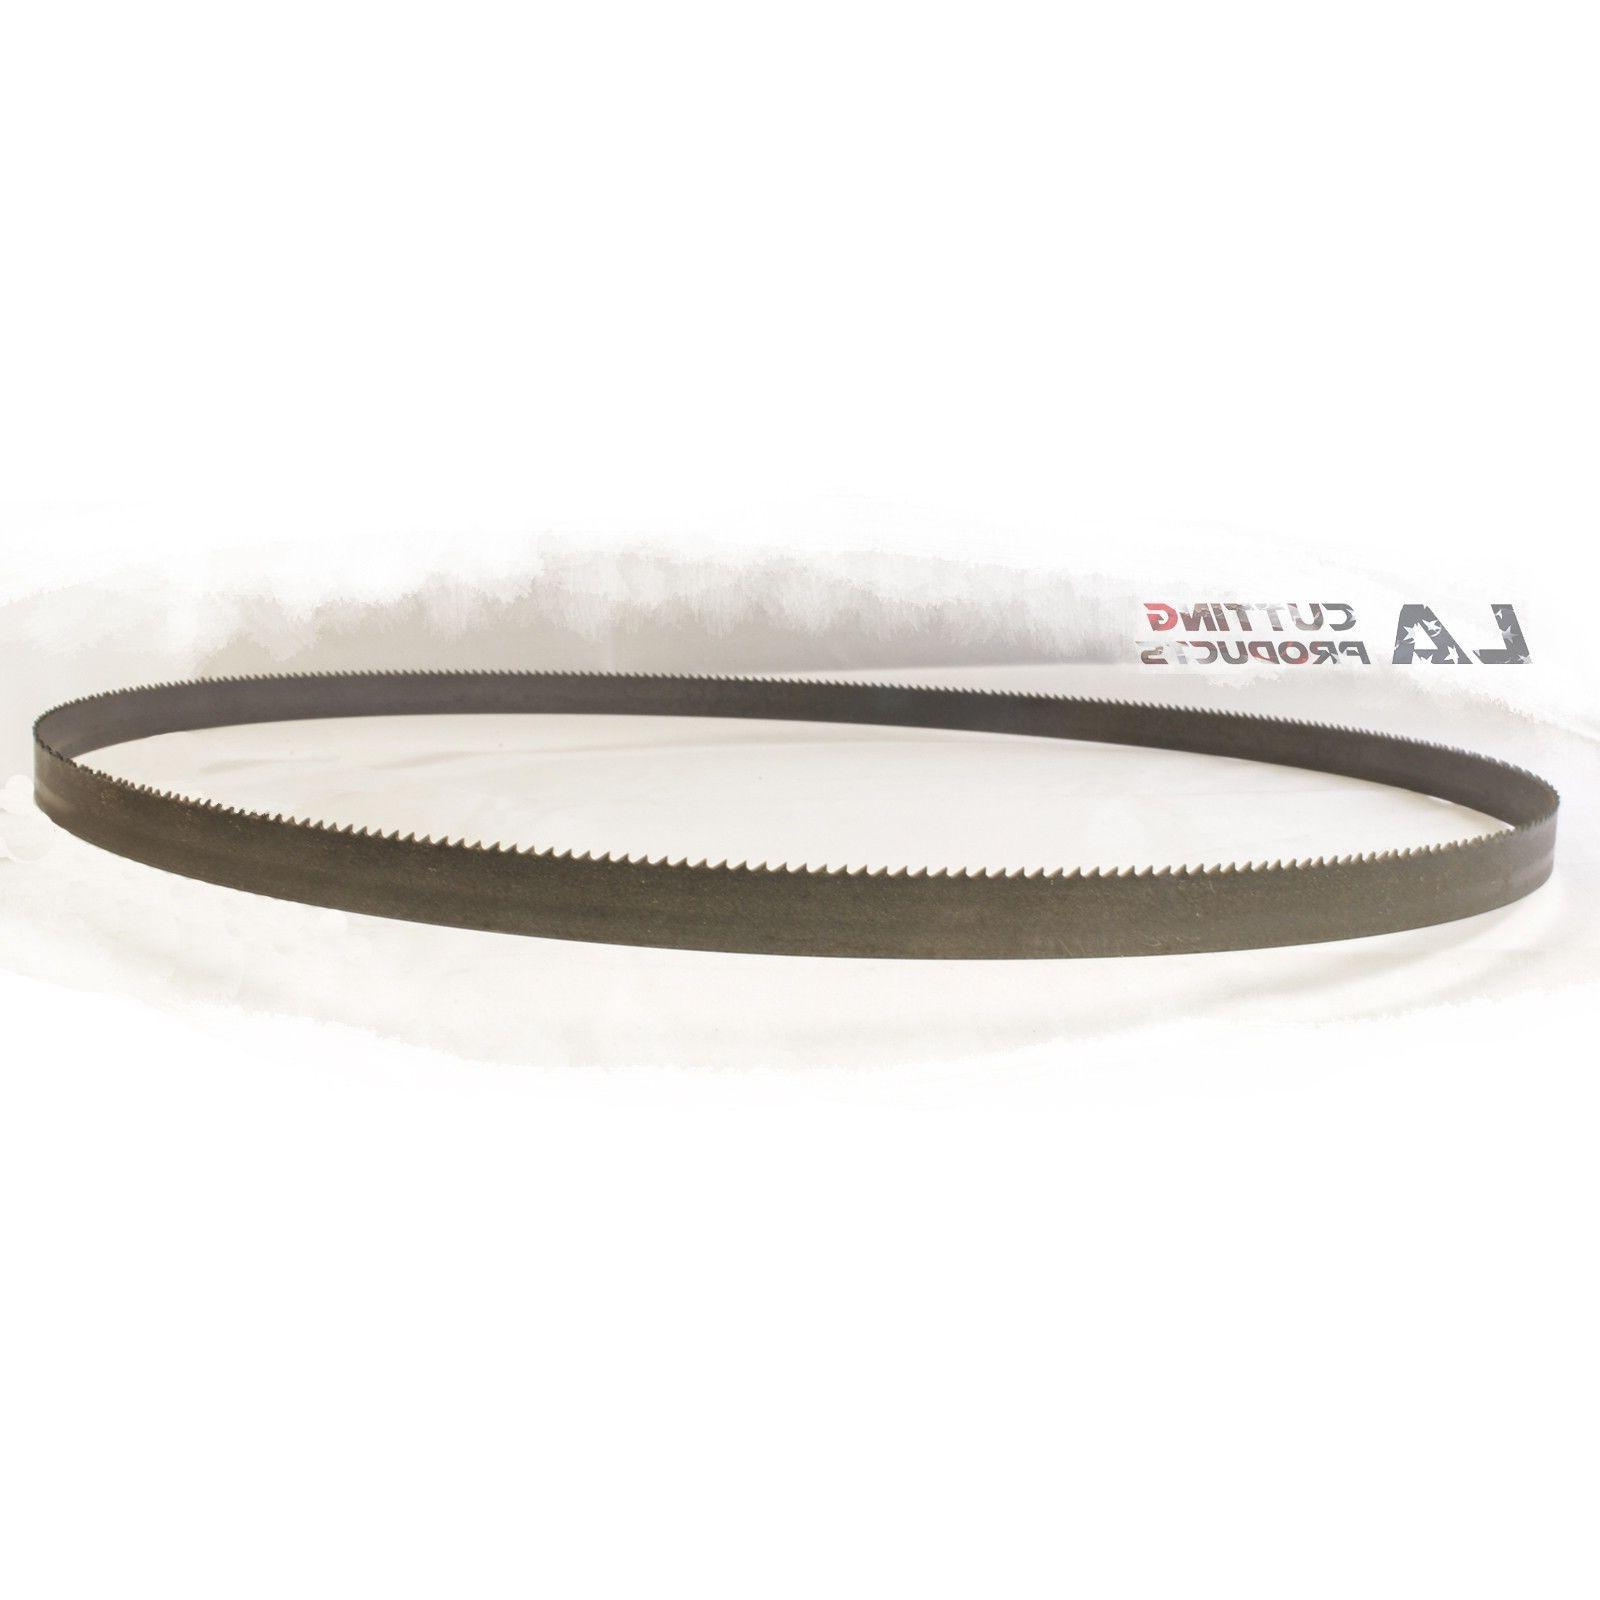 "56 7/8"" x x Band Saw Blade Bi-metal 1"